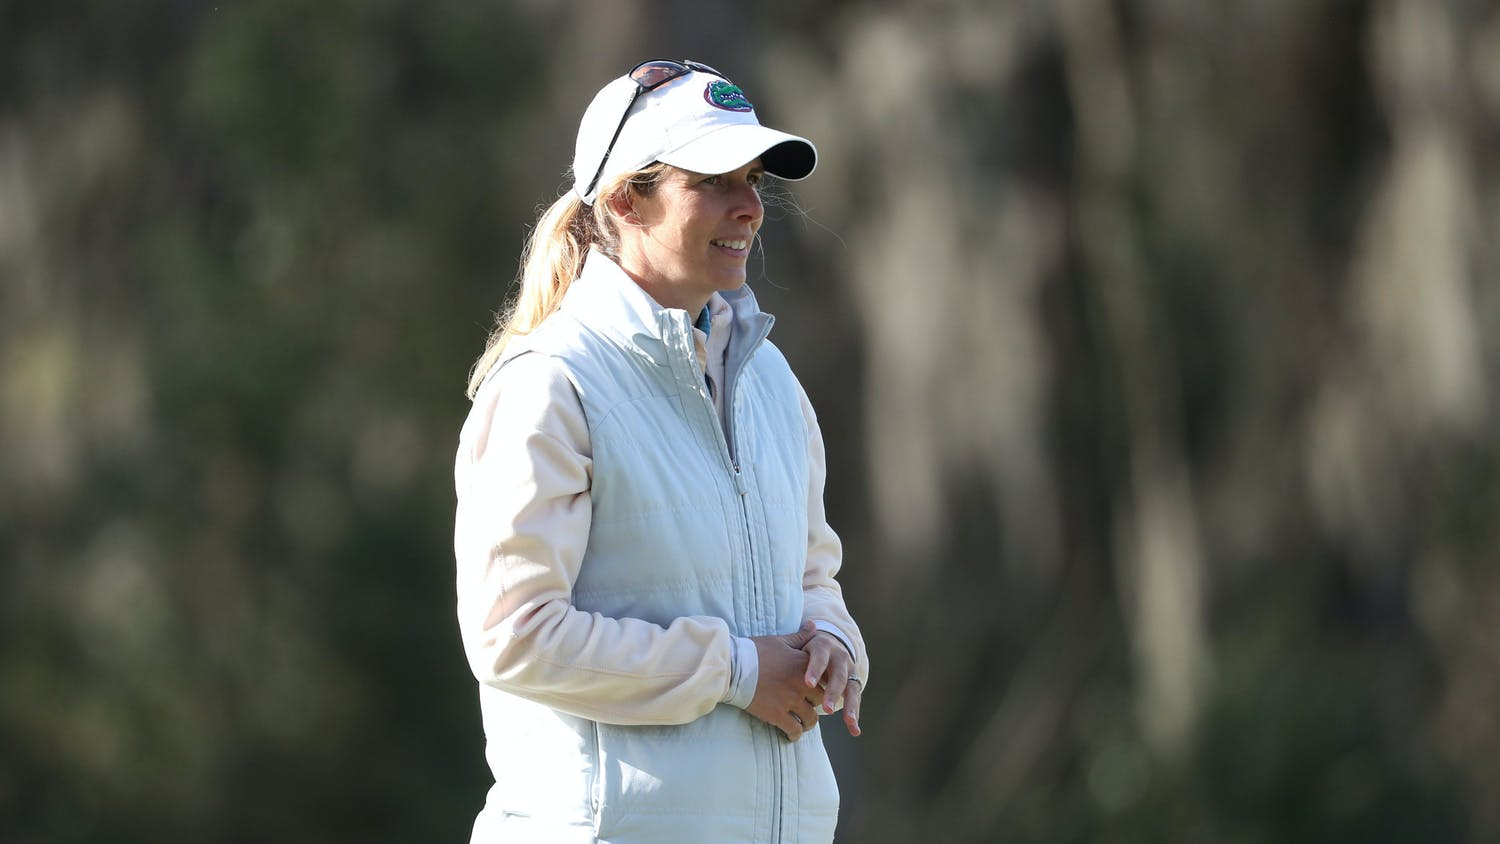 Florida Gators women's golf coach Emily Glaser on Monday, February 22, 2021 at the Mark Bostick Golf Course in Gainesville, FL. Photo courtesy of the UAA.